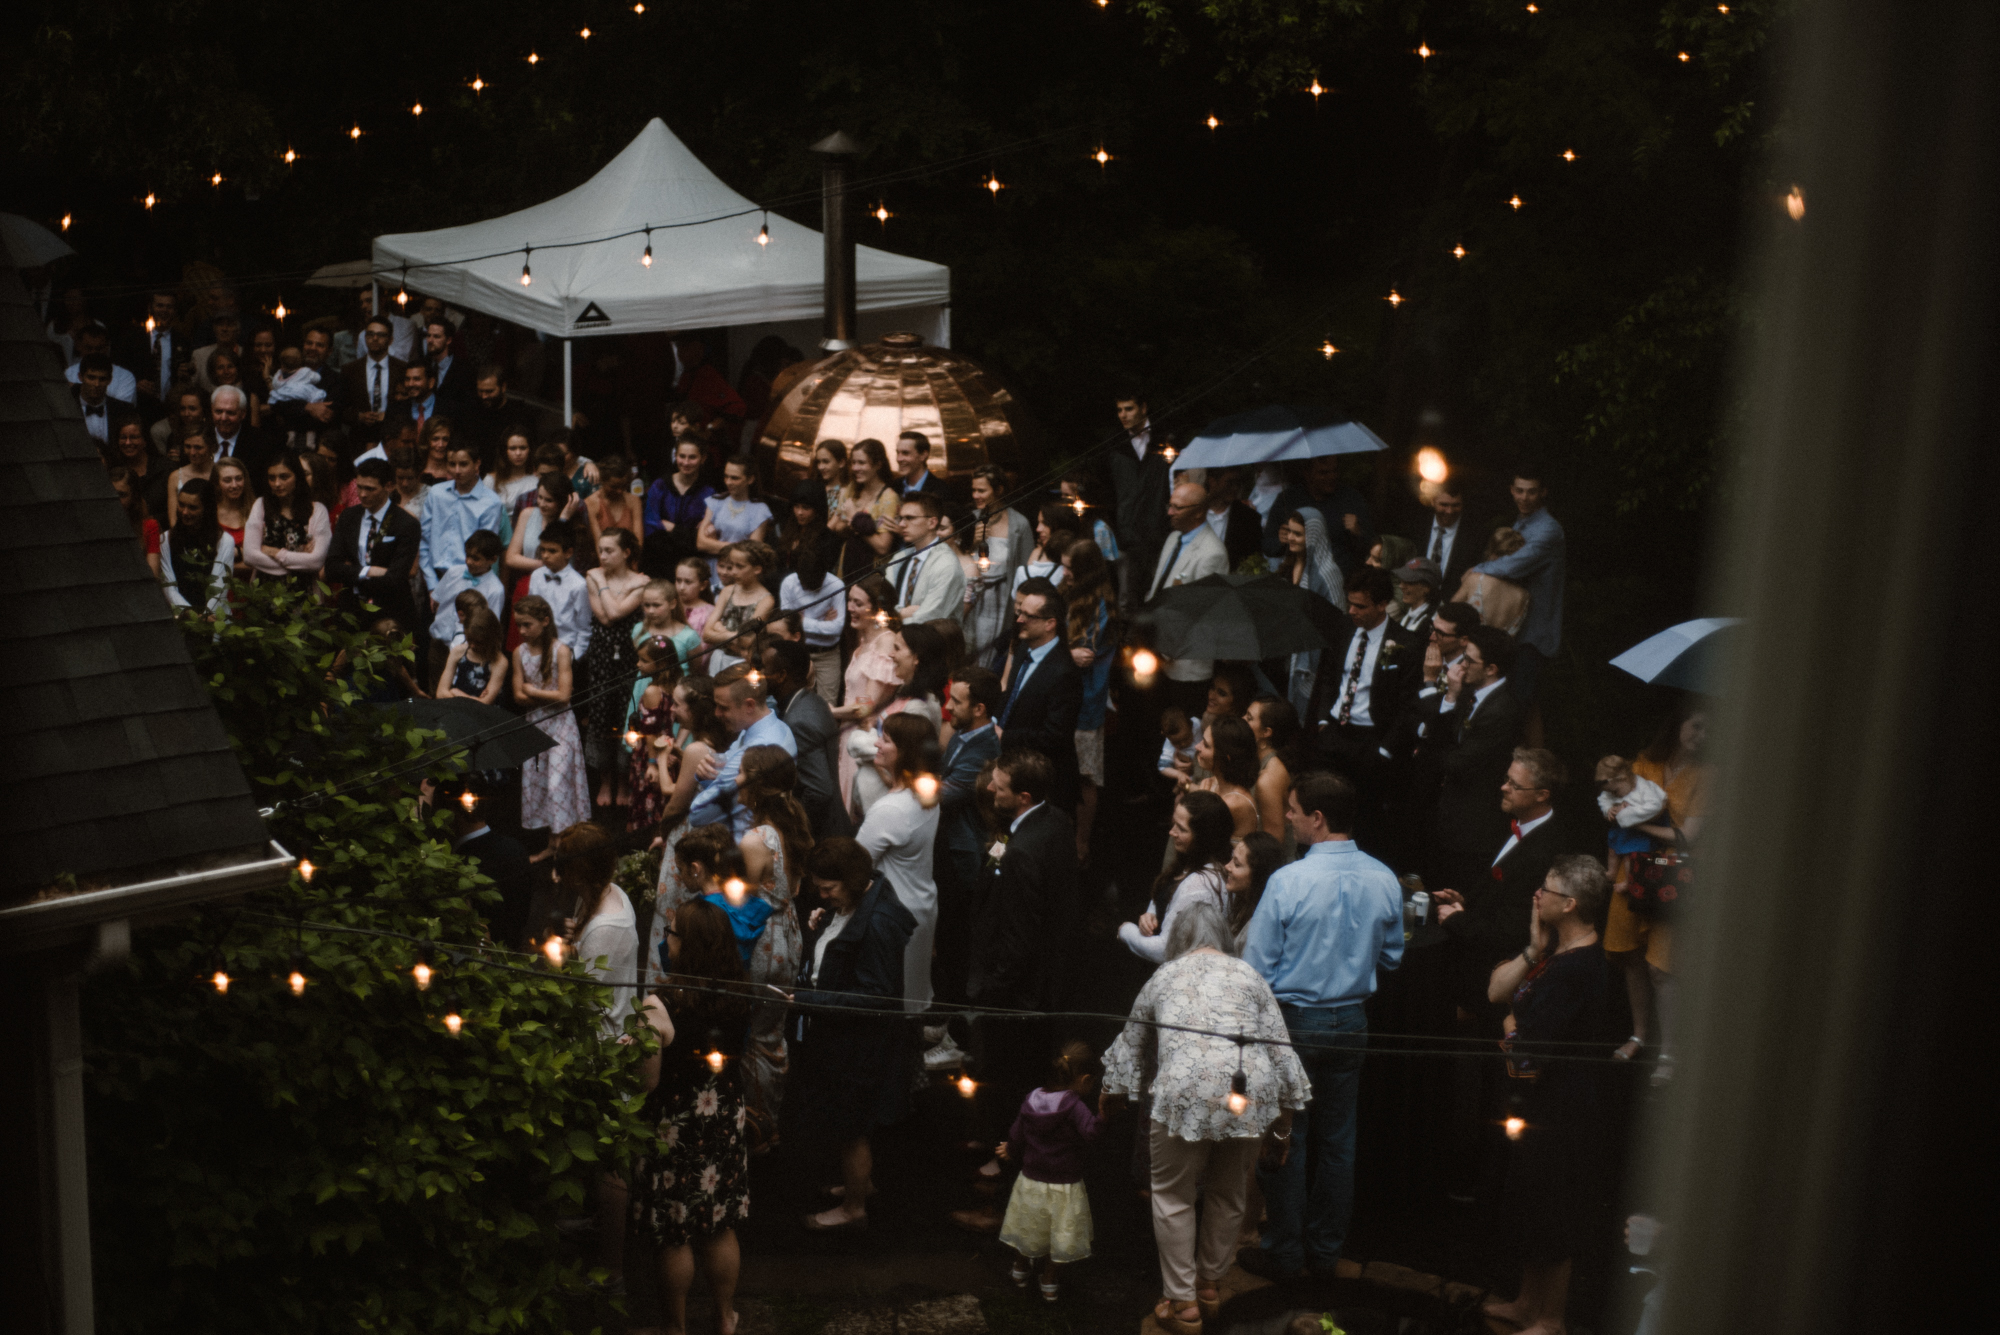 Mairi and Jude - Rainy Backyard Wedding - Intimate Wedding - Fun Reception Photos - Chicago Wedding Photographer - Catholic Wedding - White Sails Creative - Virginia Backyard Wedding Photographer_48.jpg